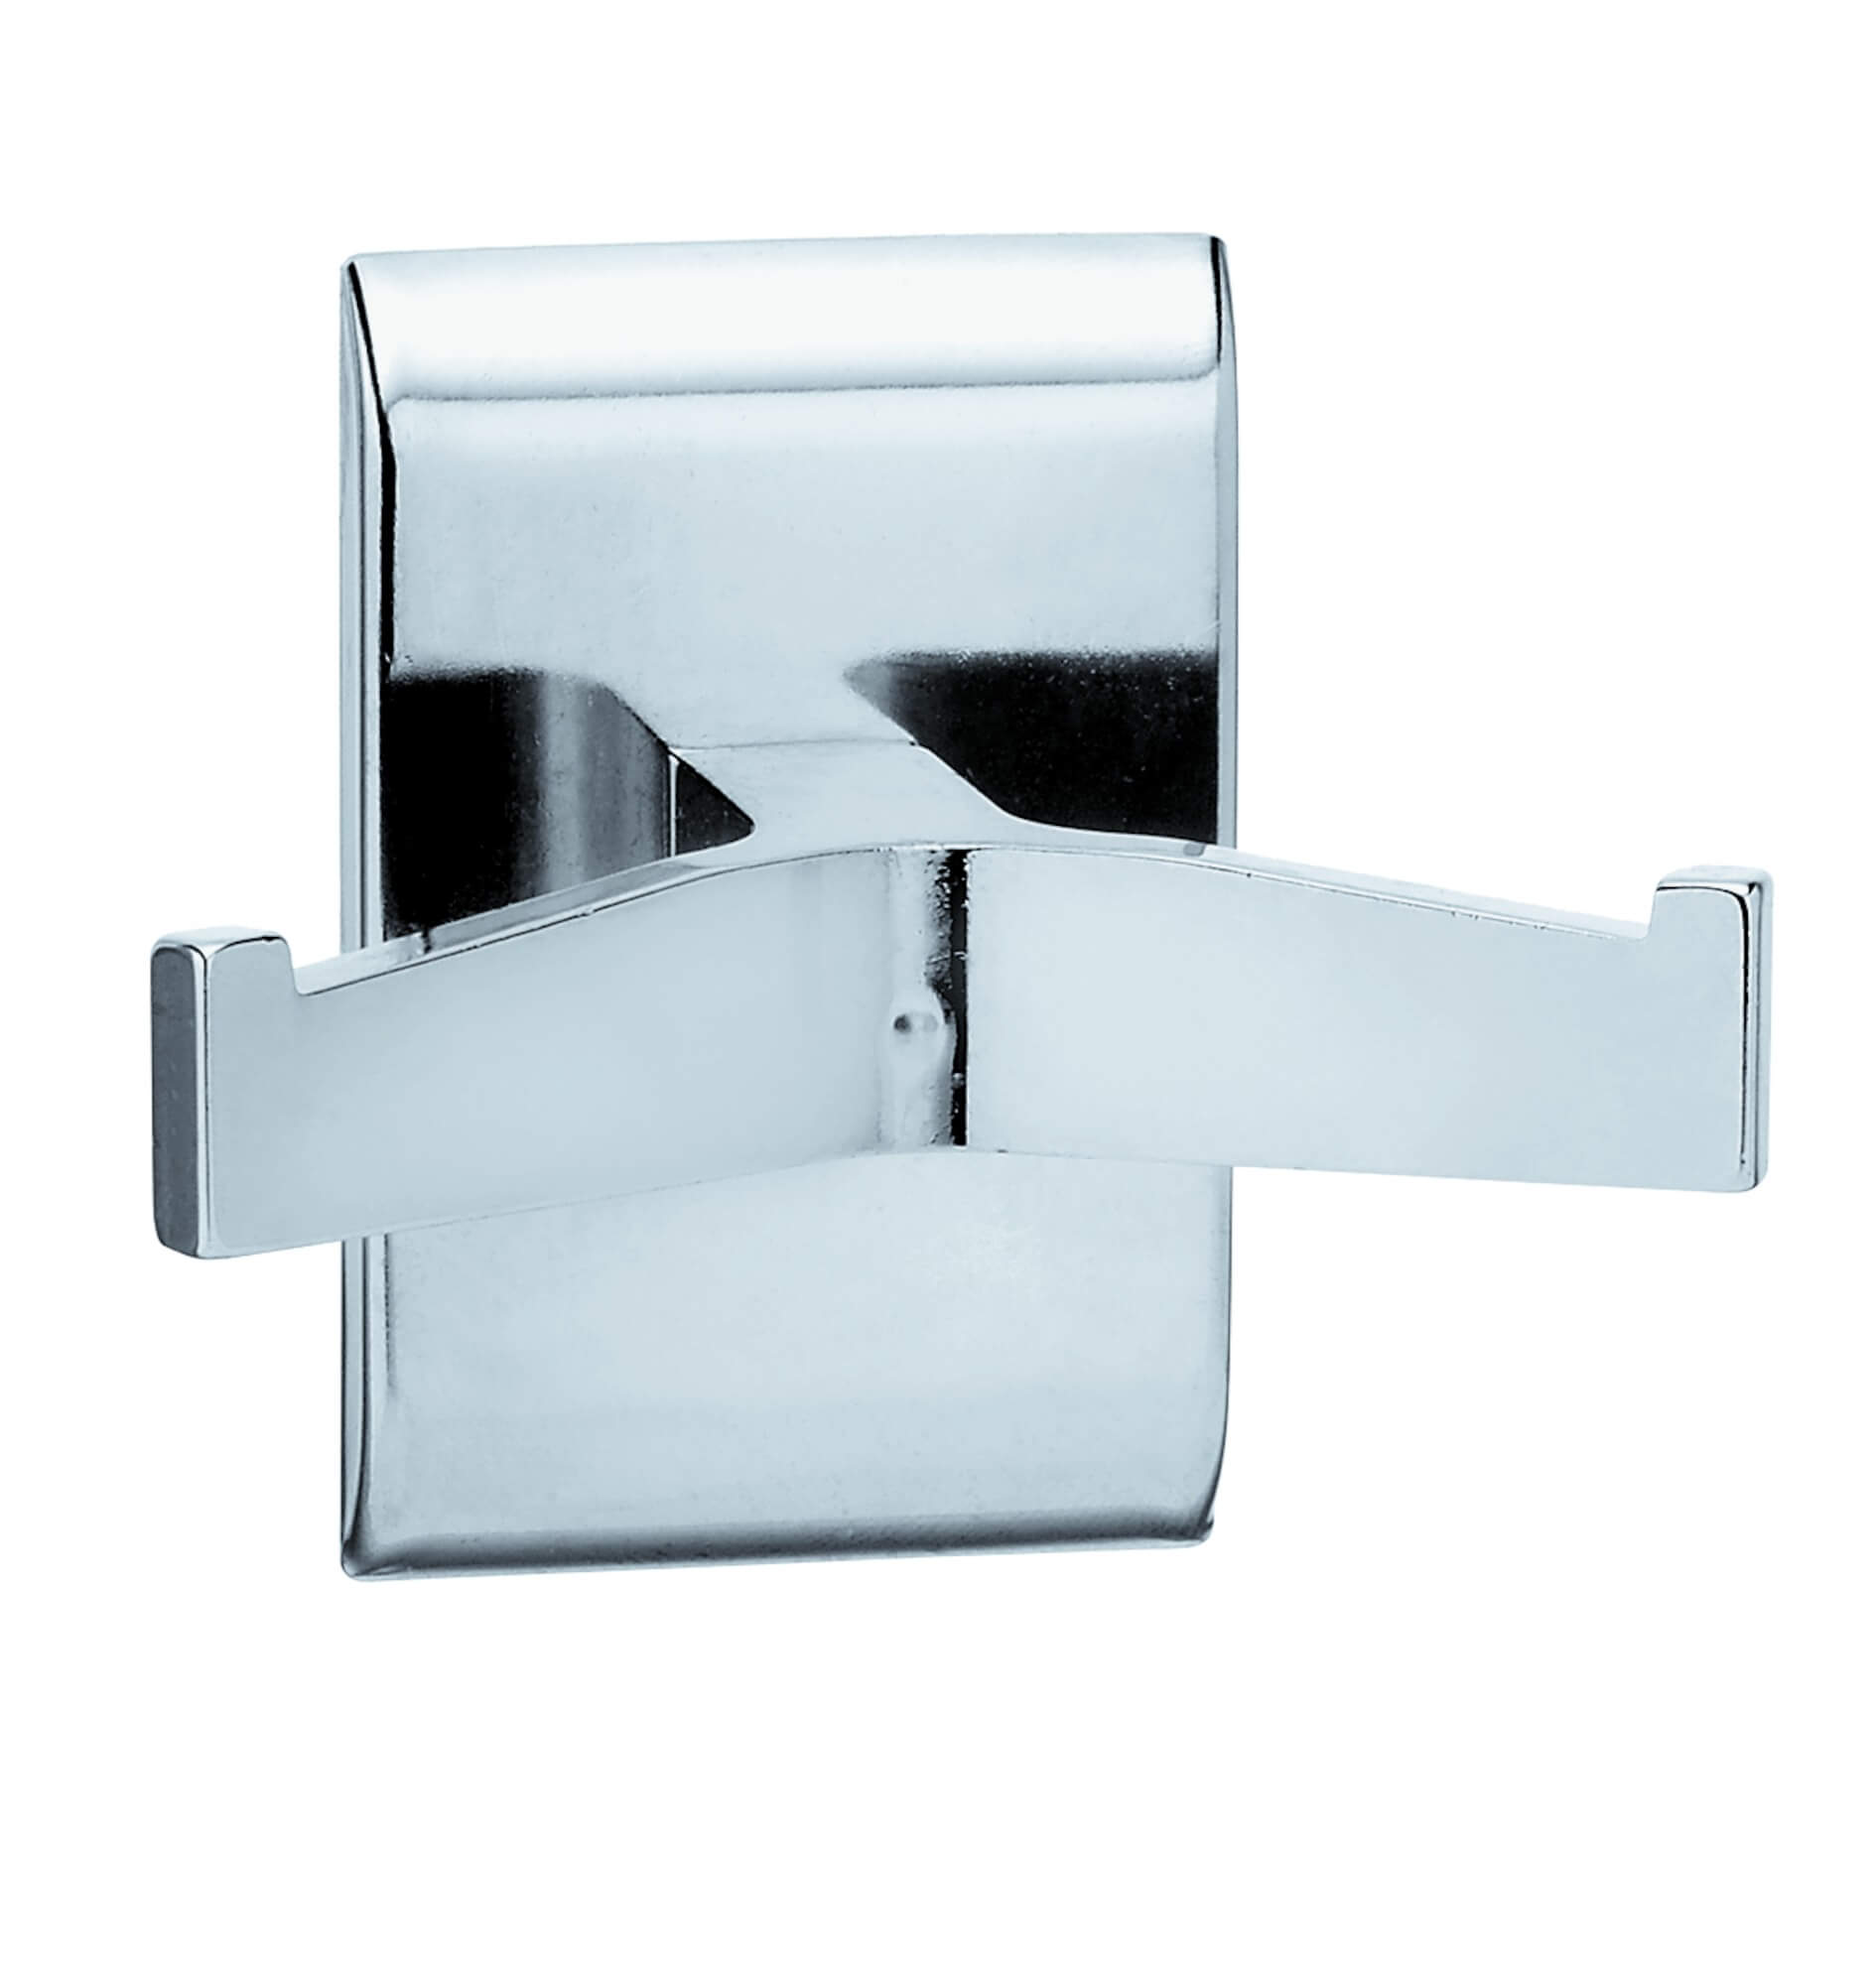 Robe Hook, Double, Chrome Plated�